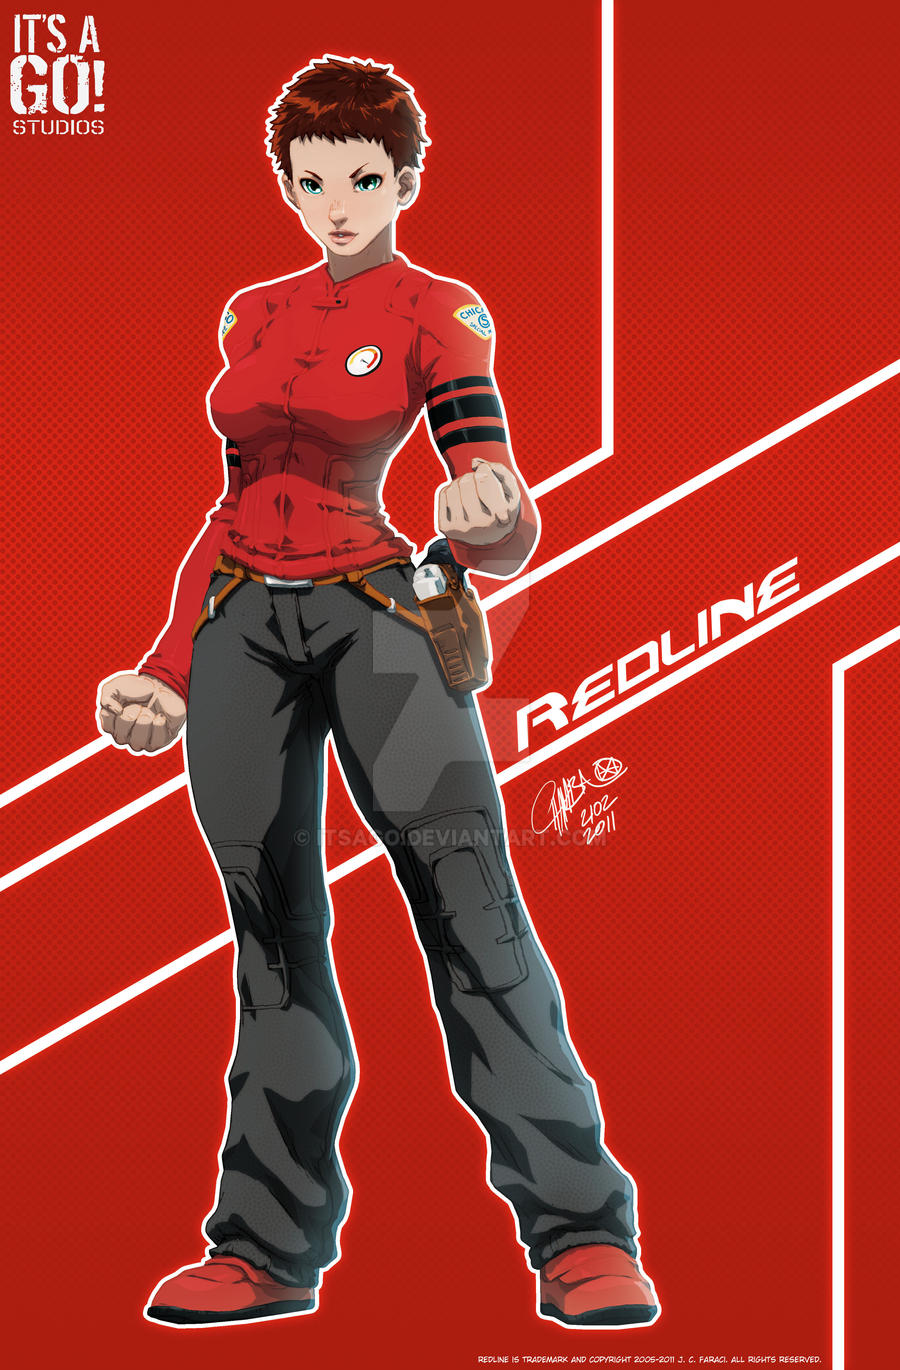 Redline by J. Cruz by itsago